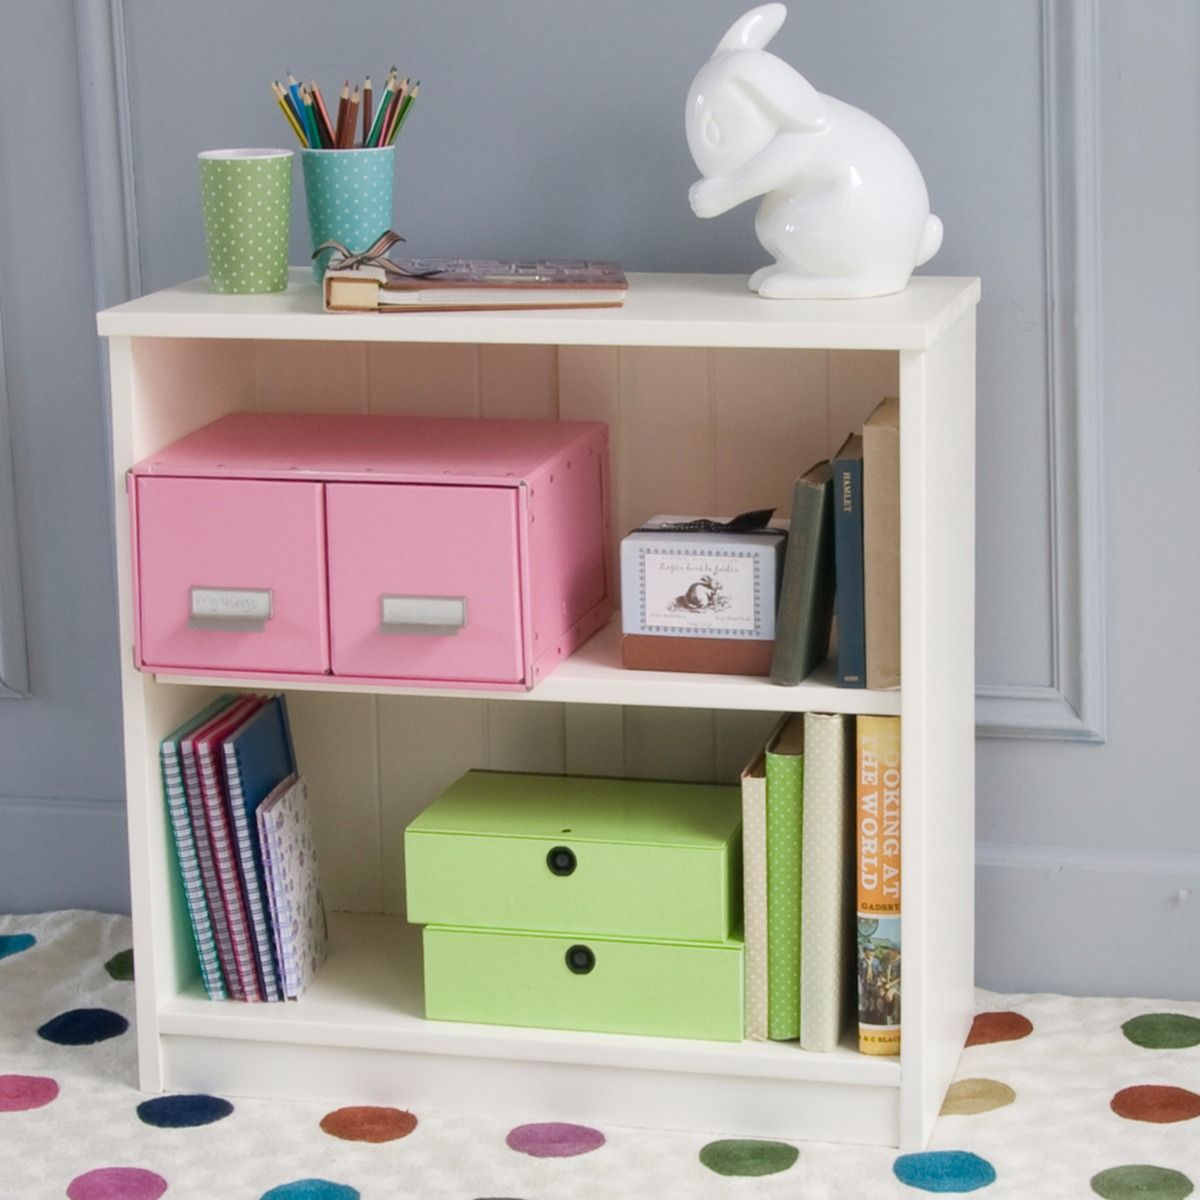 Fargo storage bookcase ivory white by little folks for for White bookcase for kids room